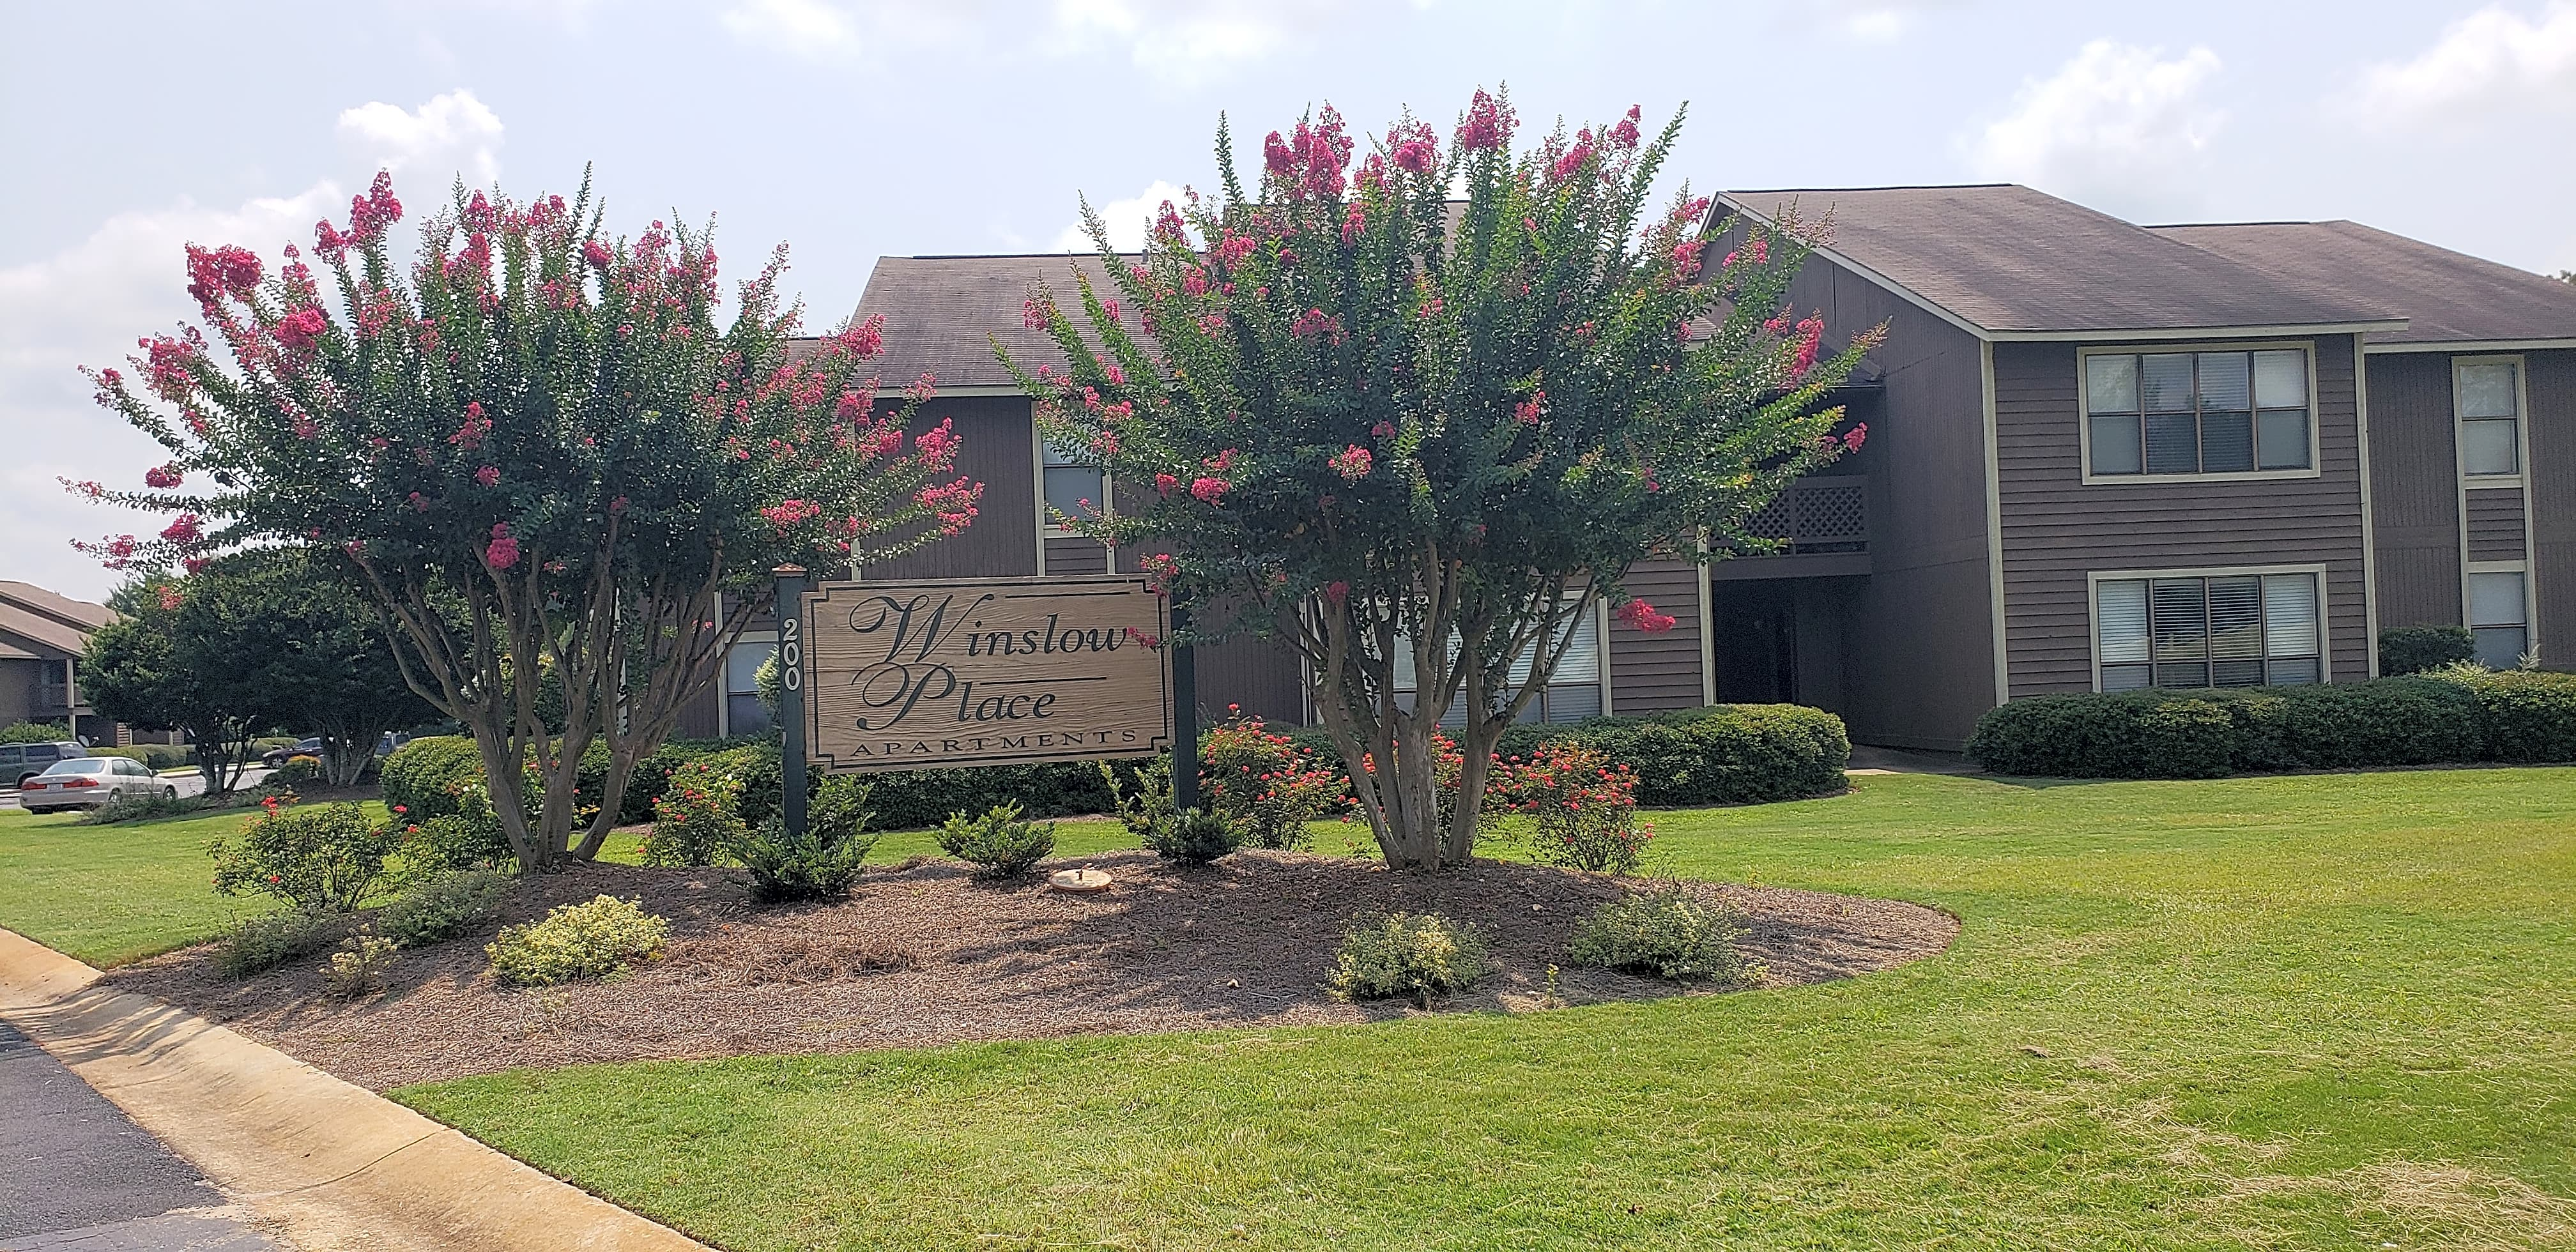 Apartments Near FVSU Winslow Place for Fort Valley State University Students in Fort Valley, GA